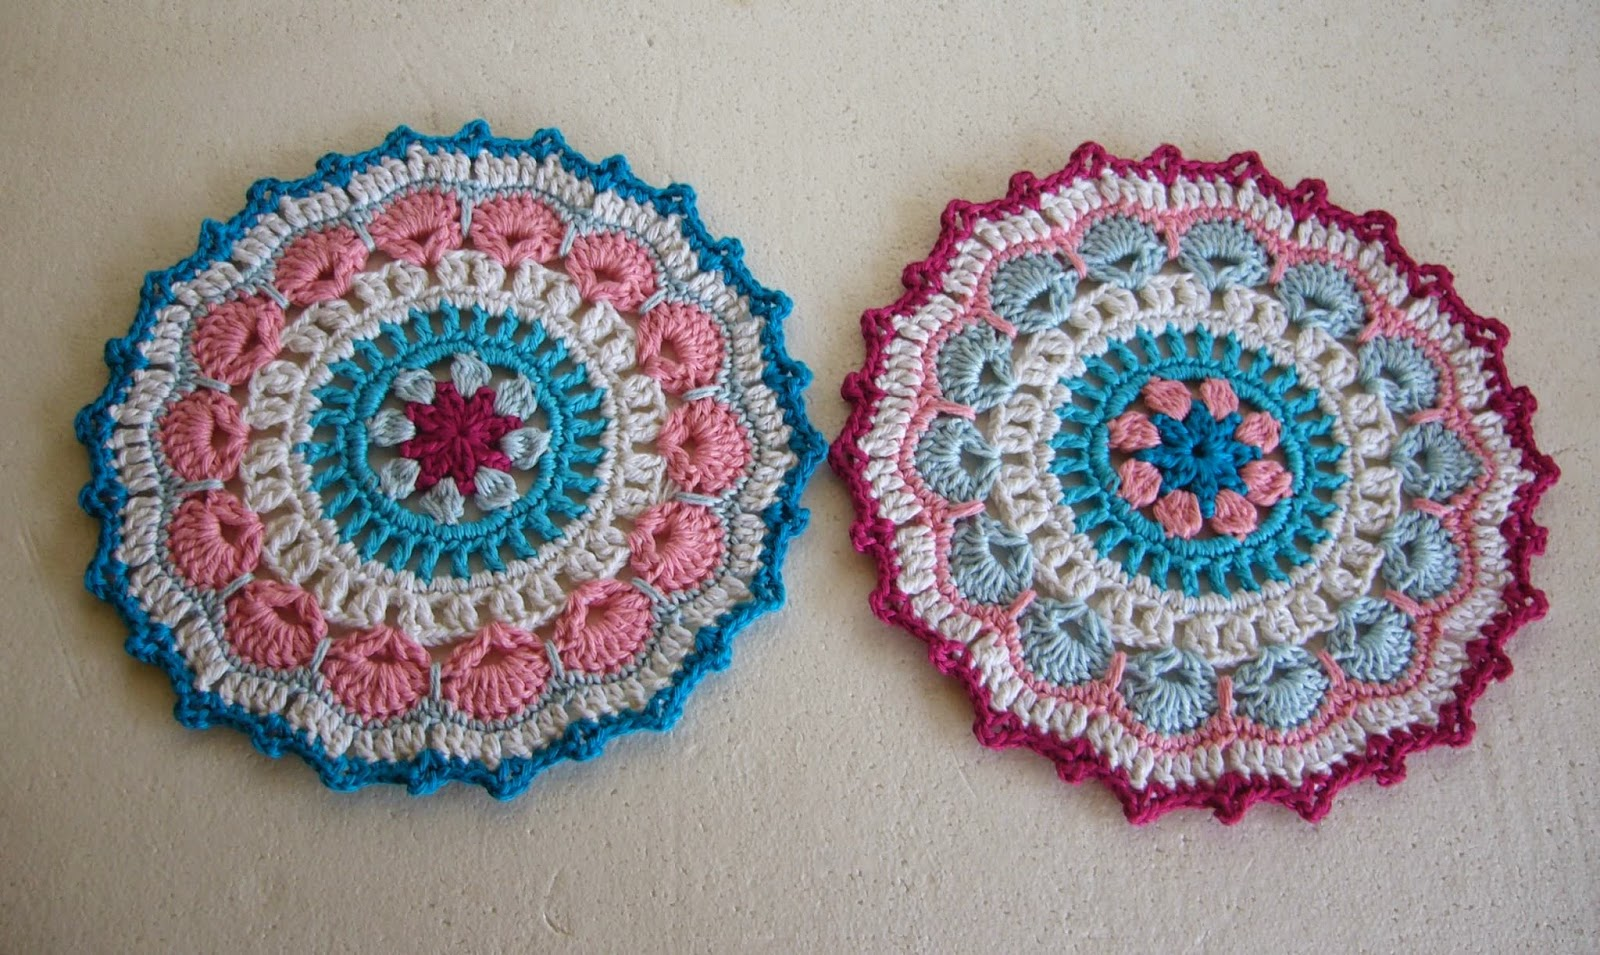 Twin crochet mandalas